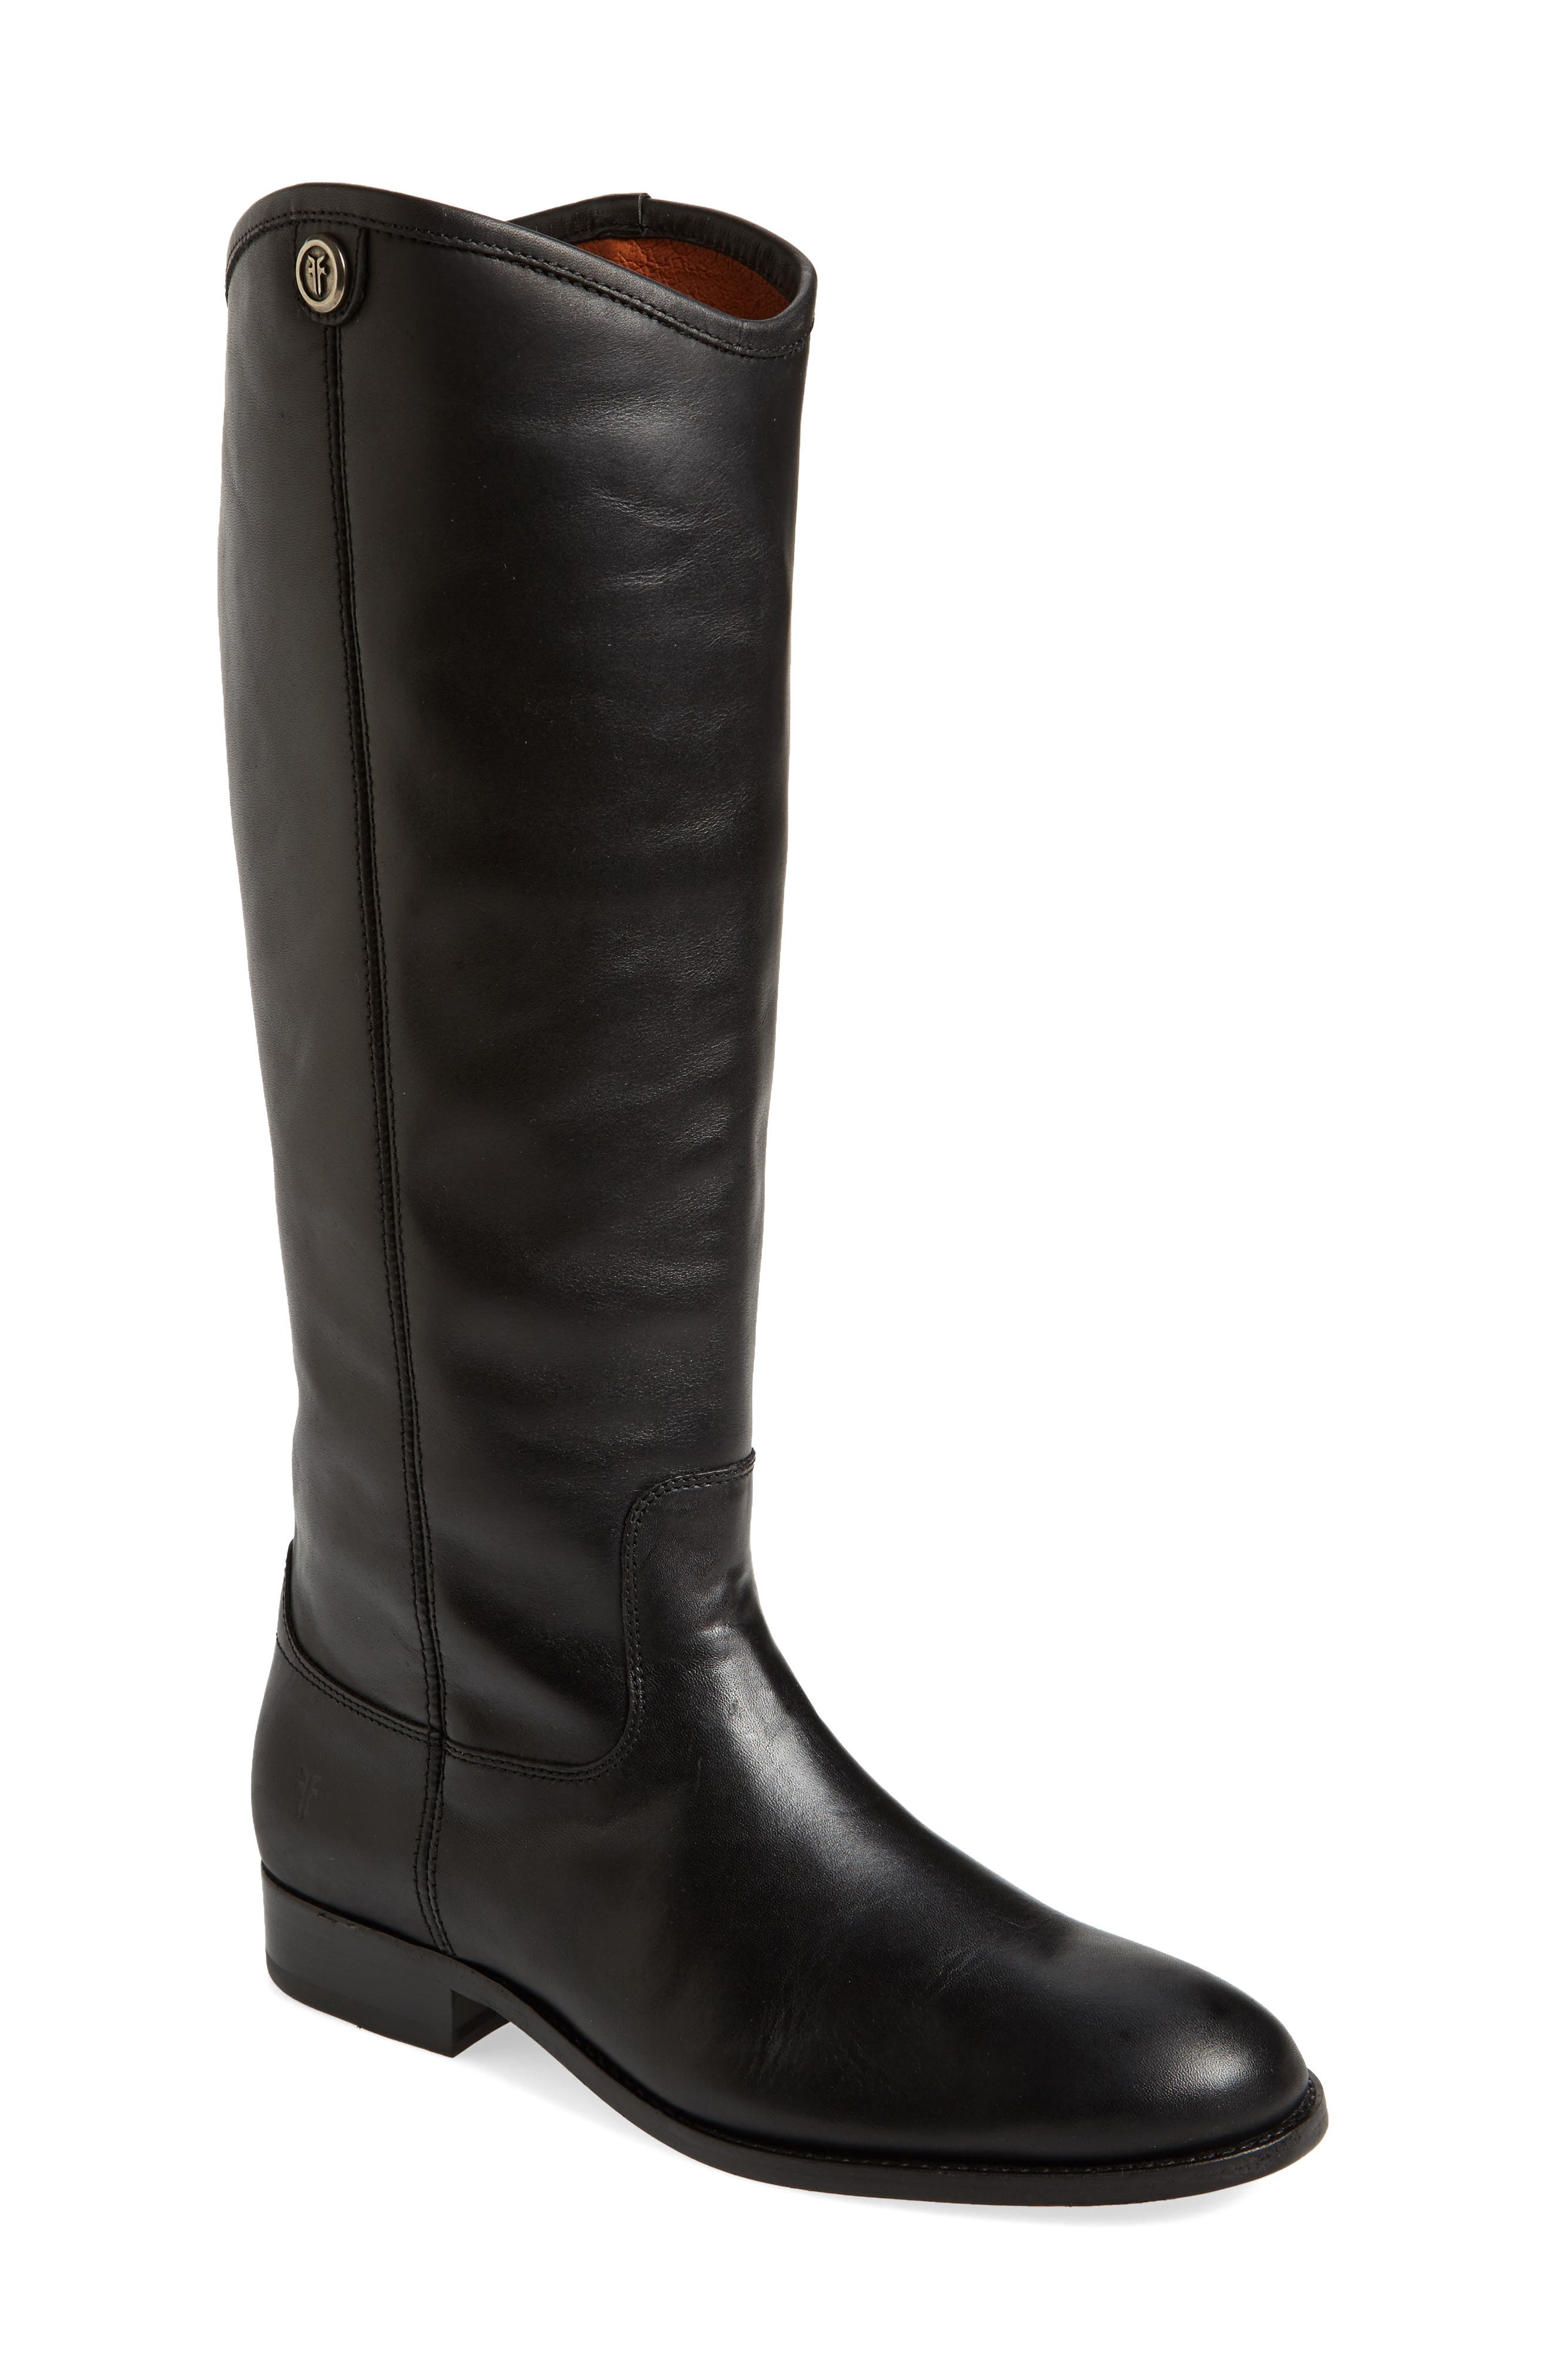 a1f77fc64dd Sale: Women's Boots & Booties | Nordstrom